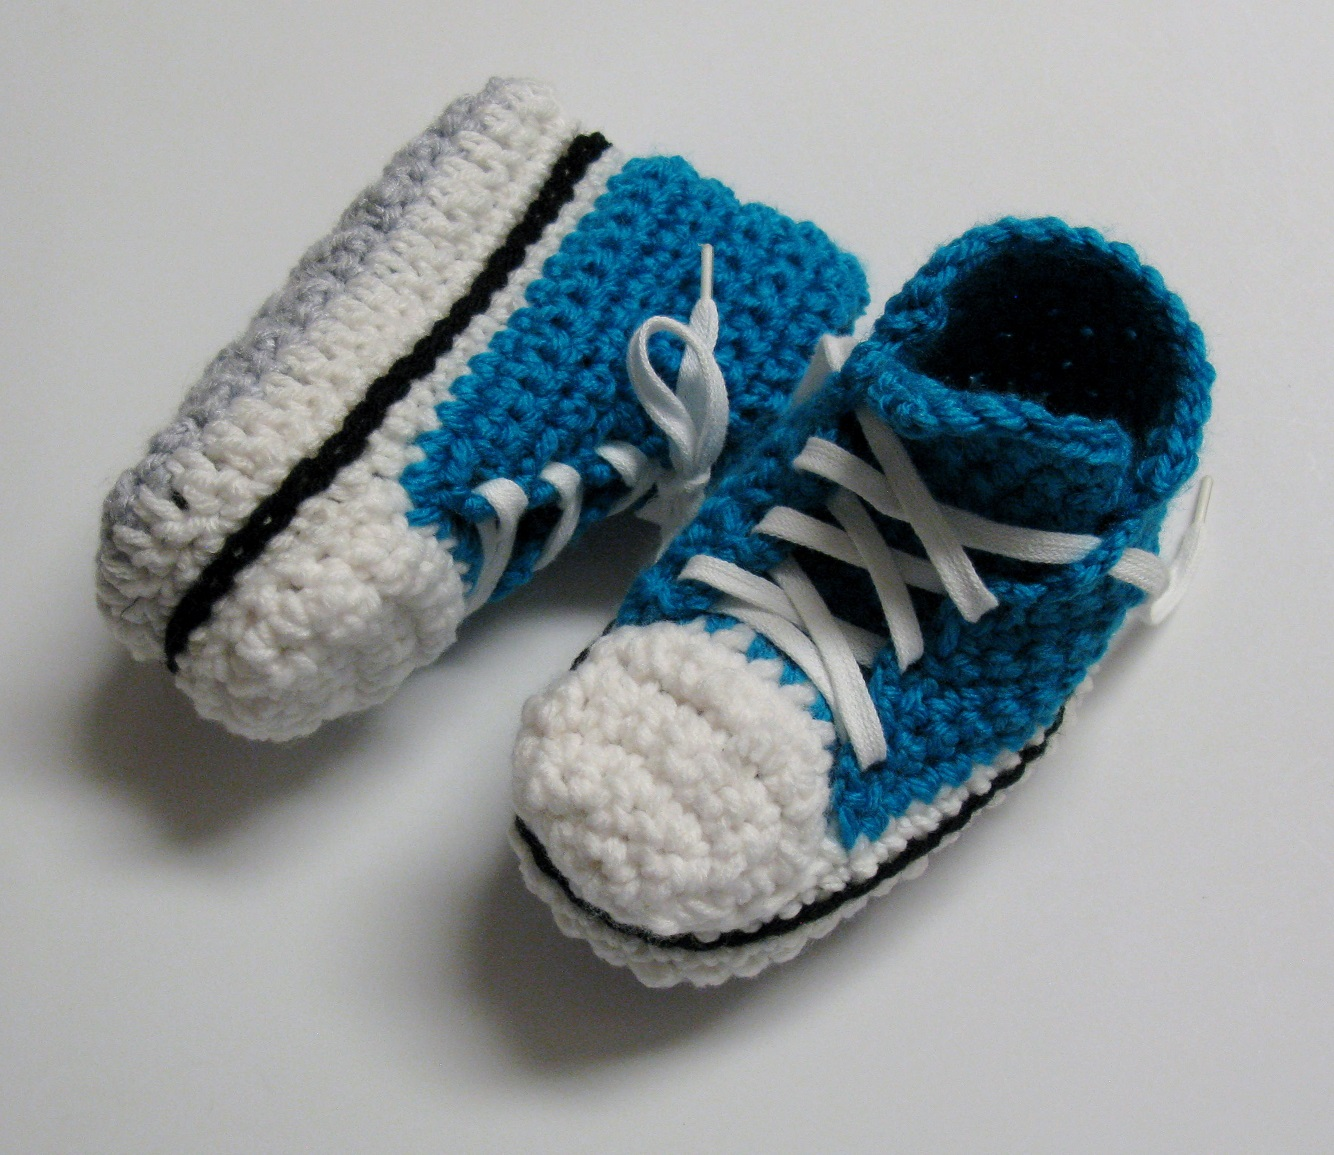 Pantoufles Converse au crochet pour enfants 2 à 10 ans